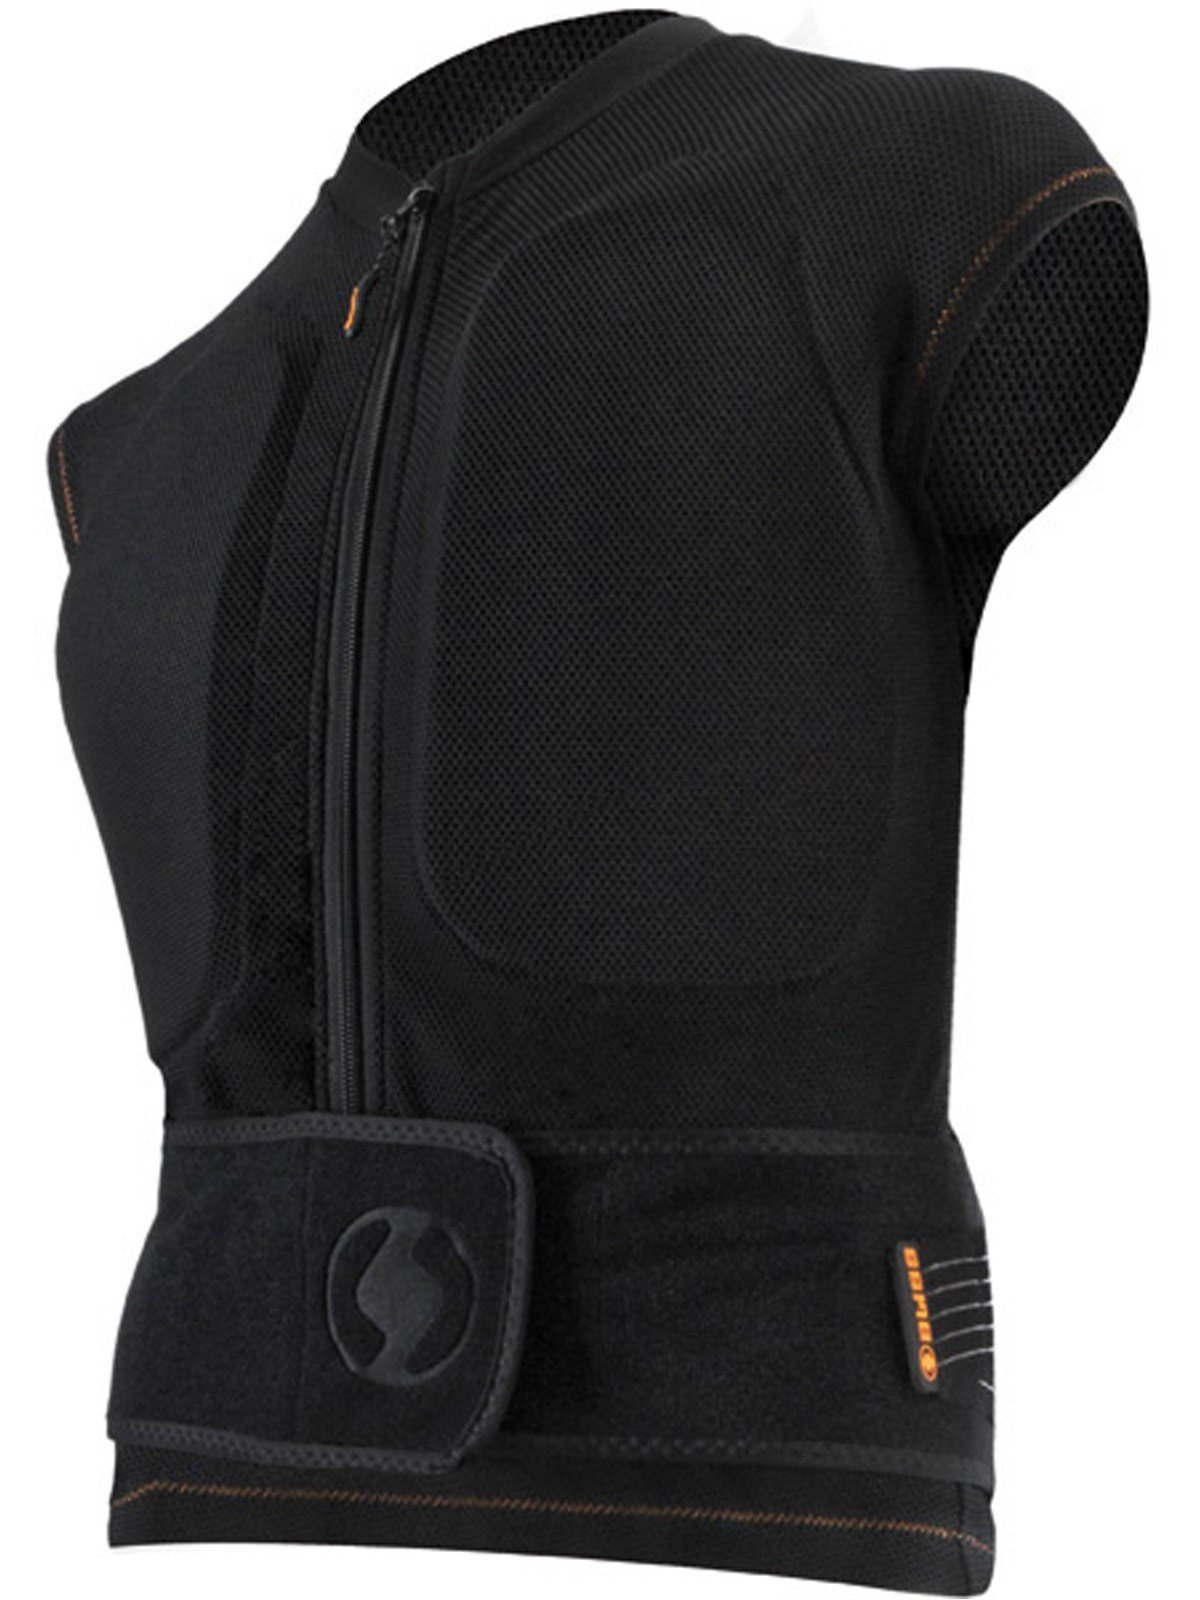 bliss Black Classic Snowboarding Protection Vest (S, Black)